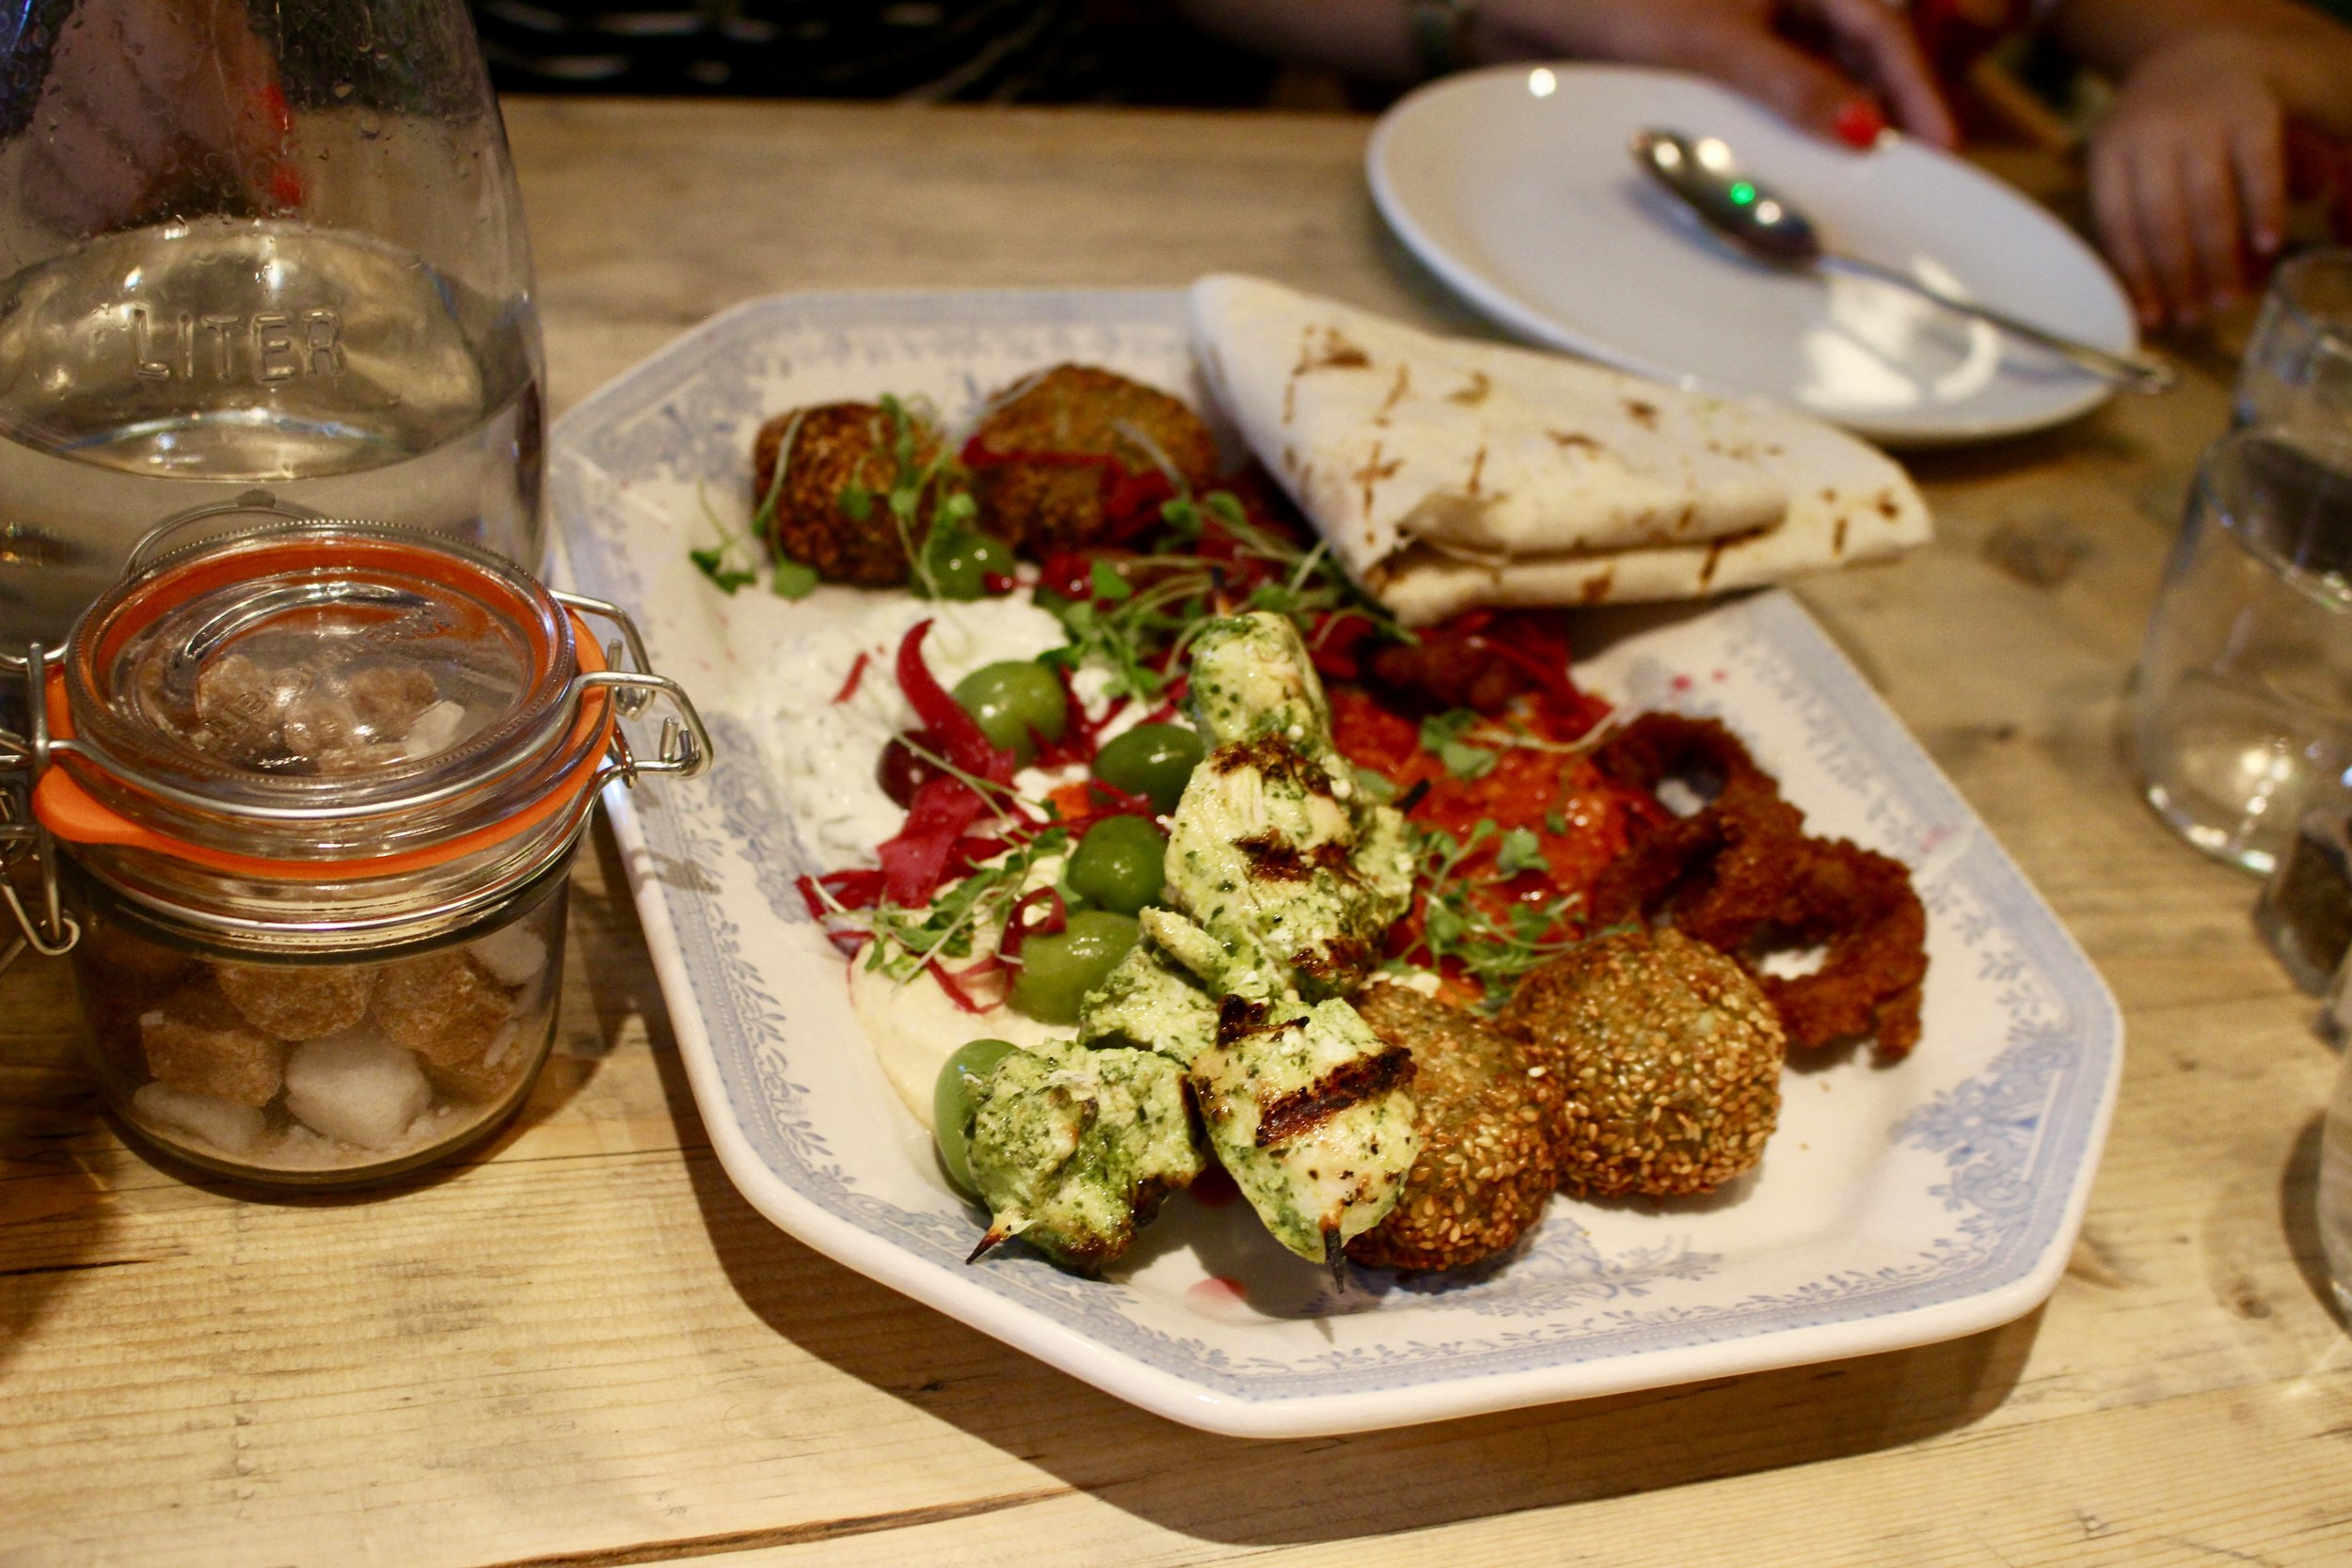 I don't know if the photo does it justice but the falafel was amazing.